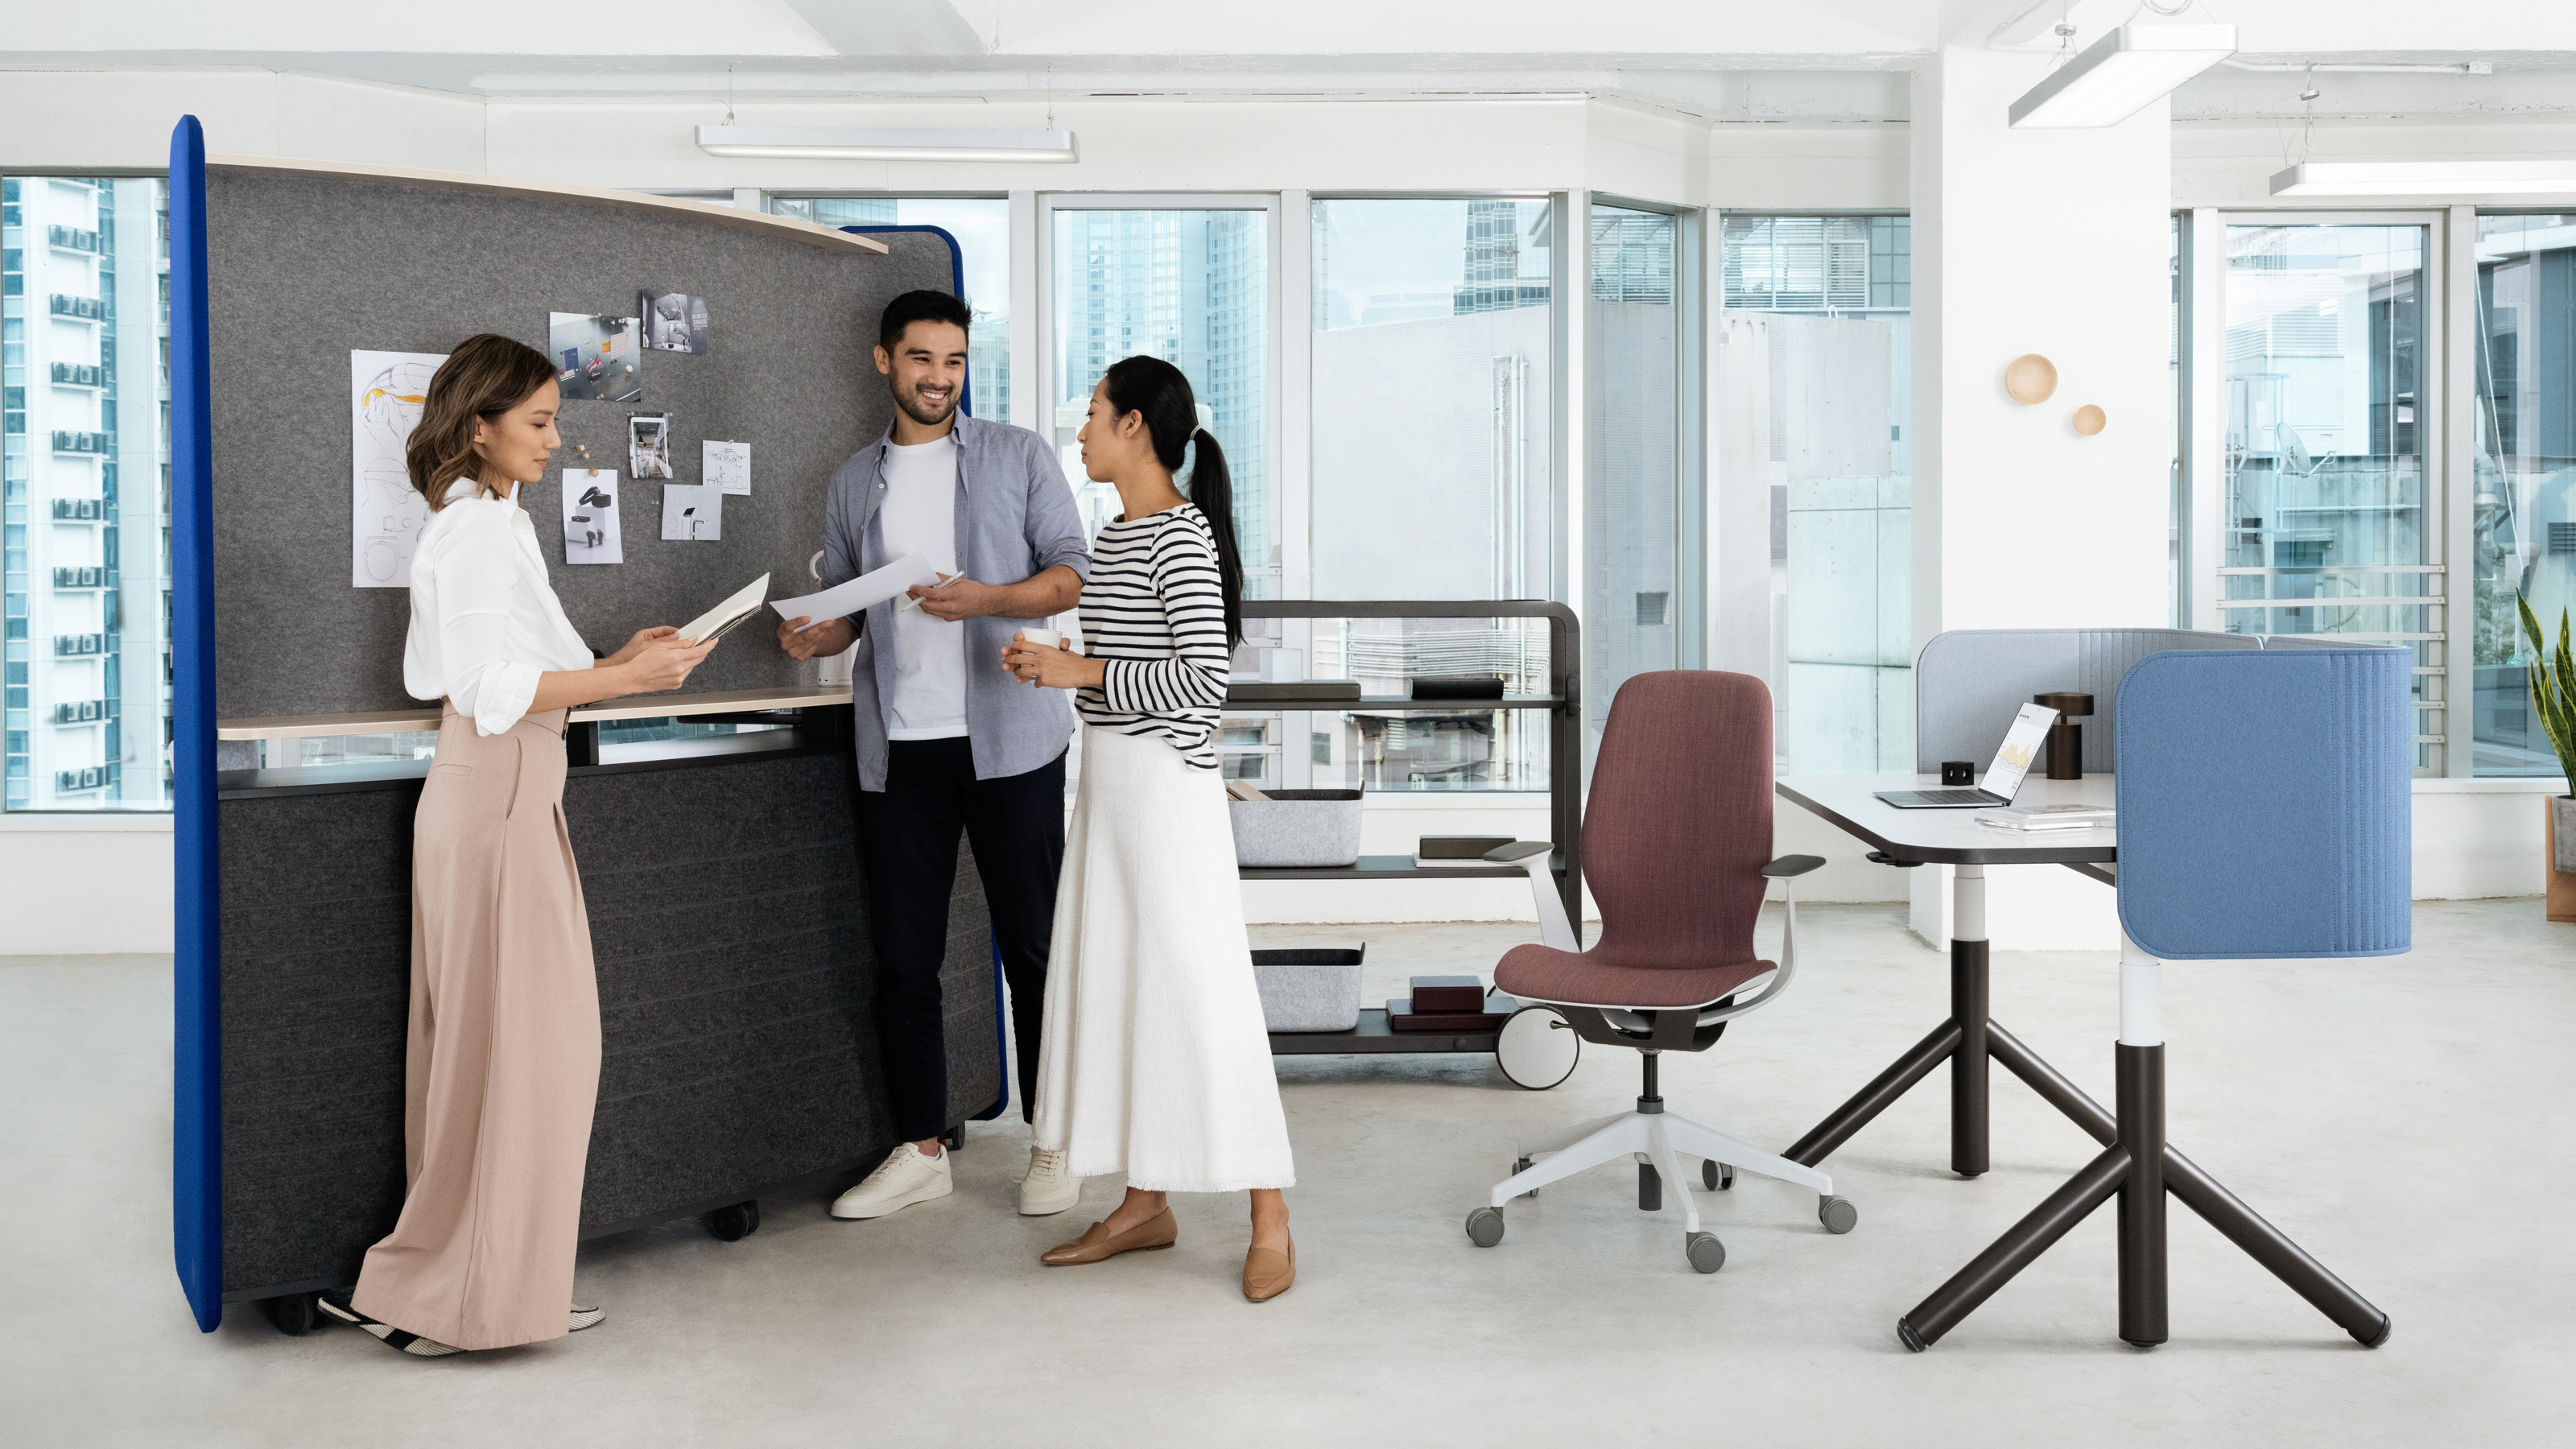 Steelcase Introduces Flex Huddle Hub - Steelcase